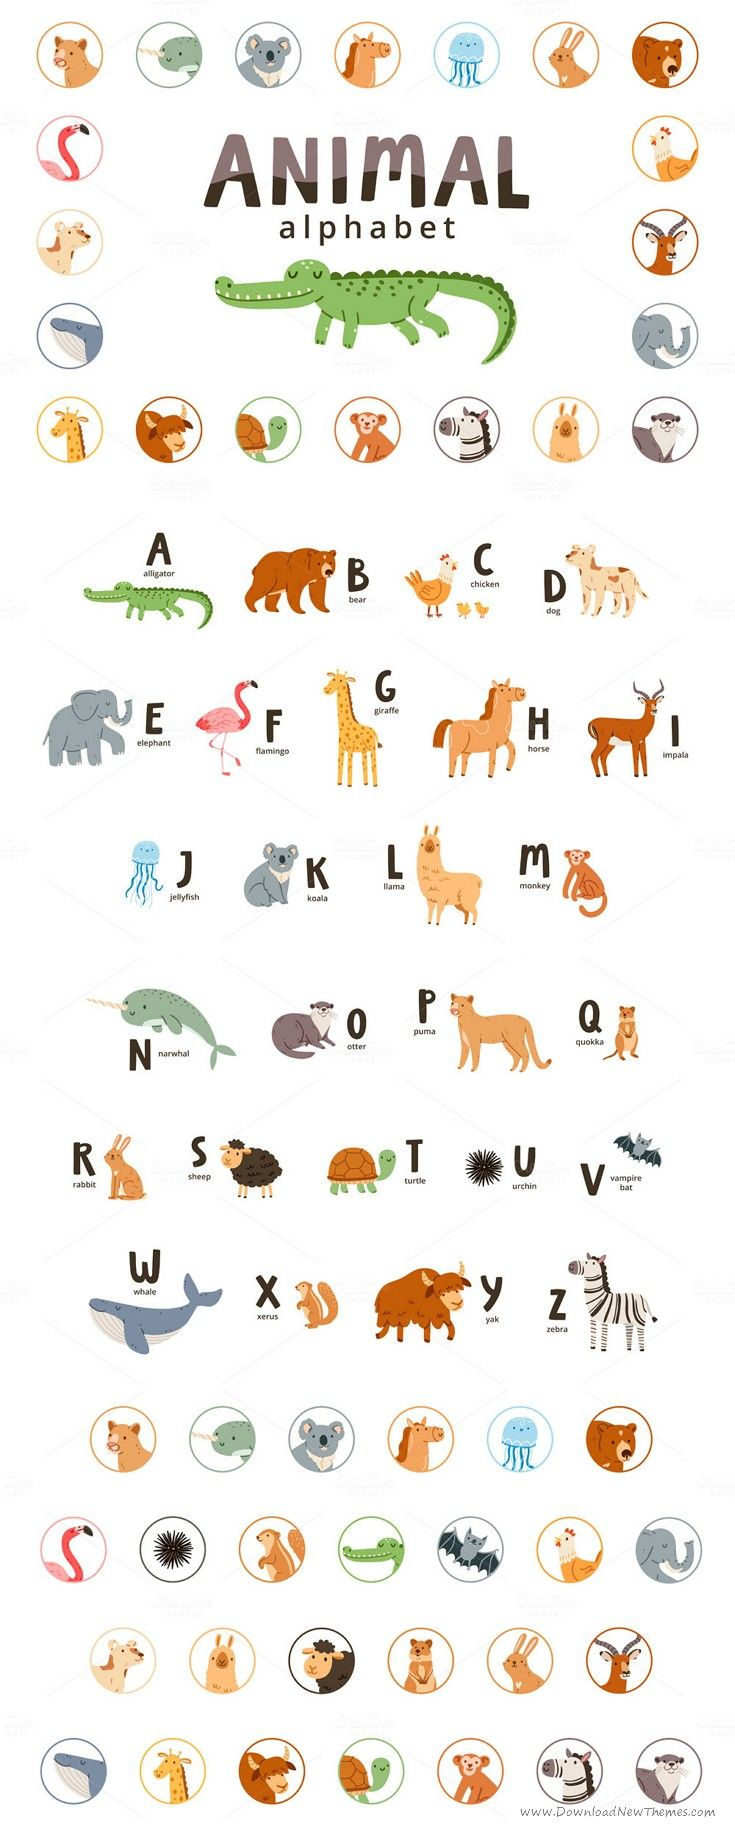 Animal Alphabet Animal Alphabet Alphabet Childrens Illustrations